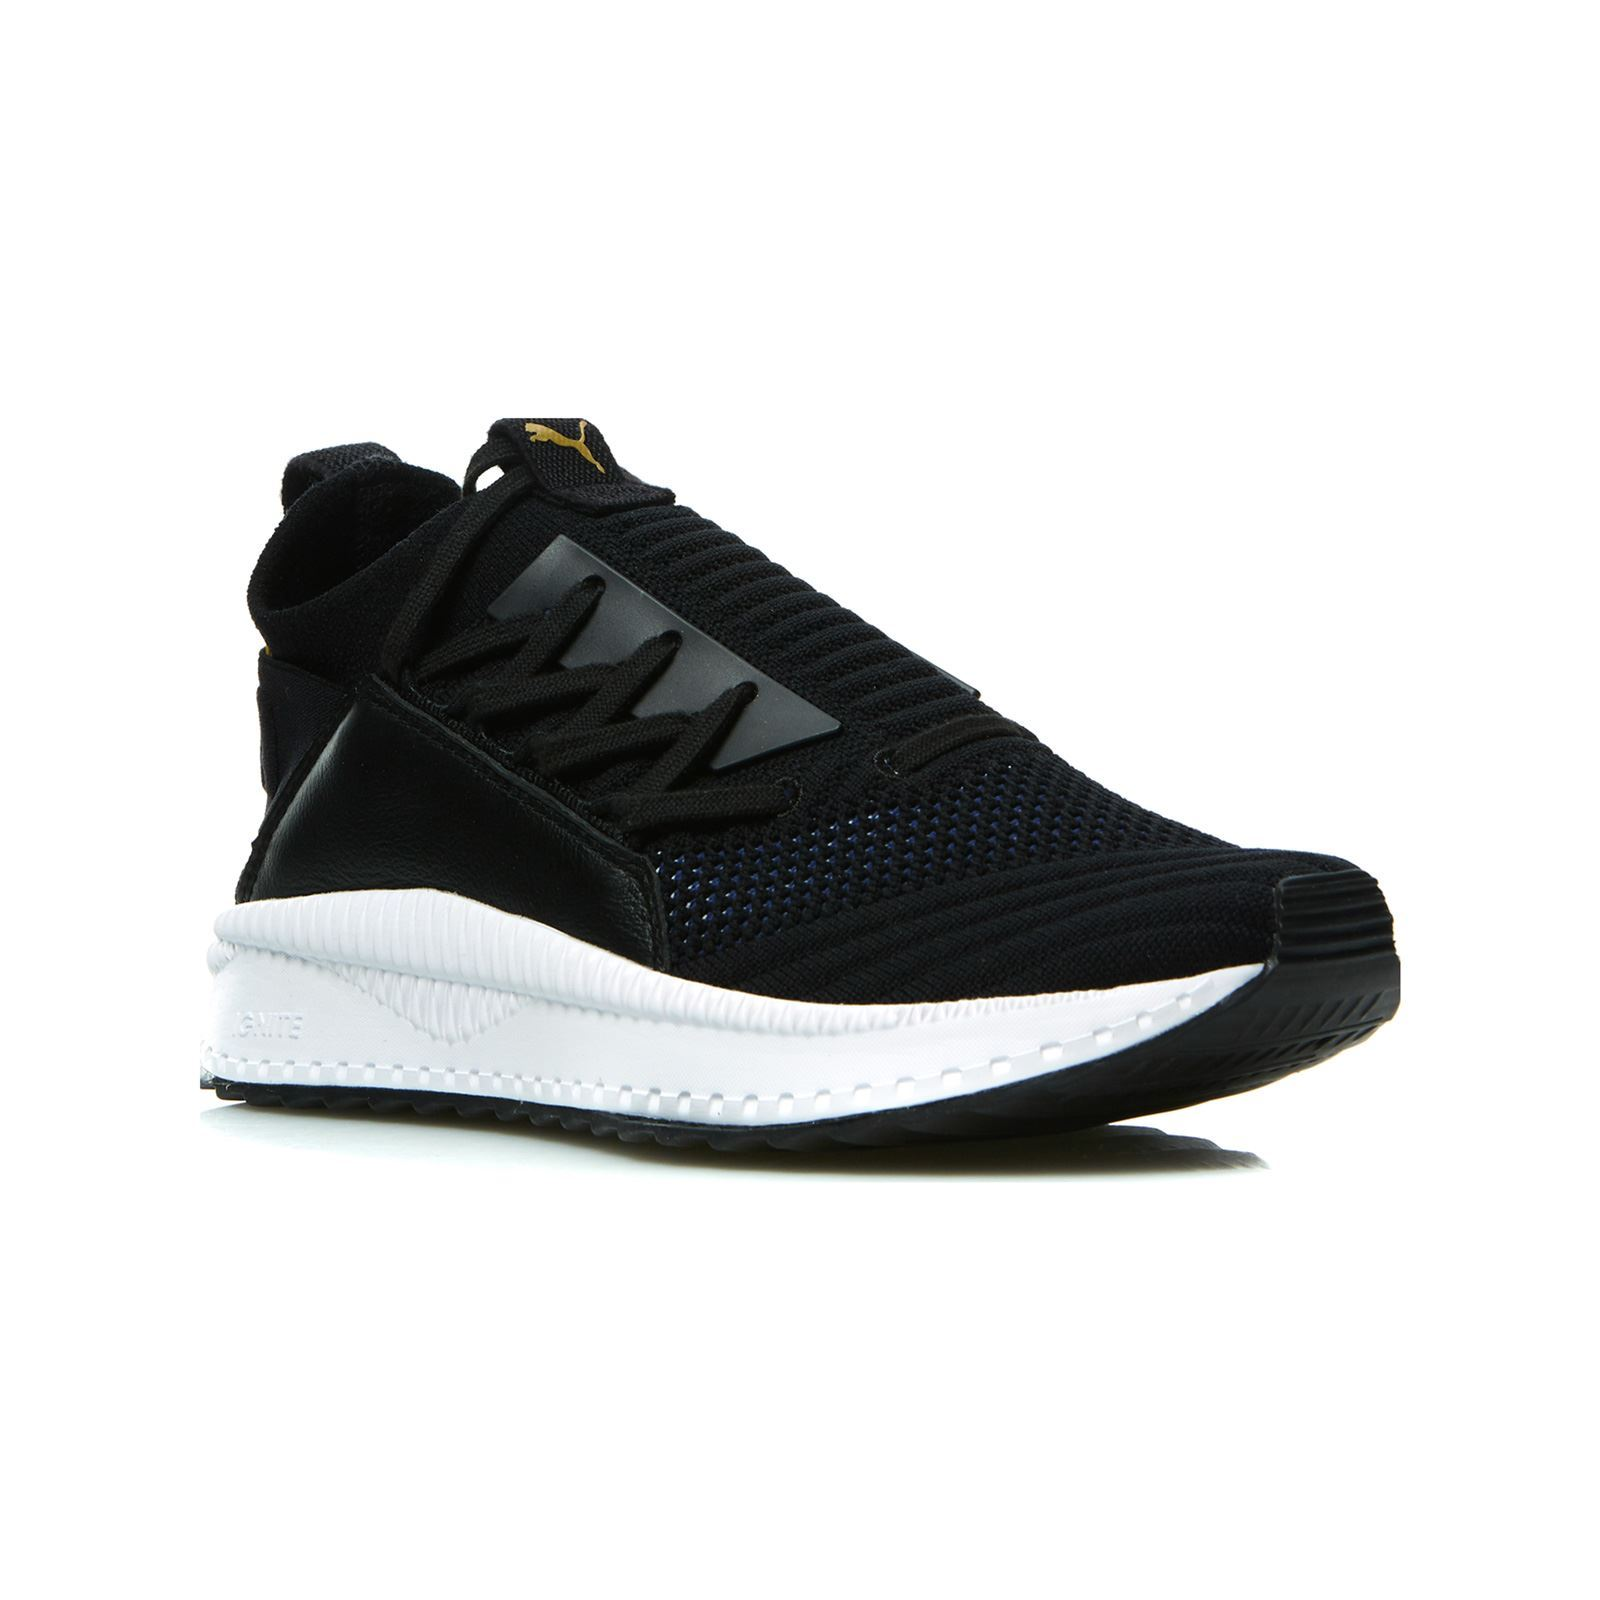 9c8547616f69 Baskets Puma Noir Puma Brandalley Baskets ERUZqf